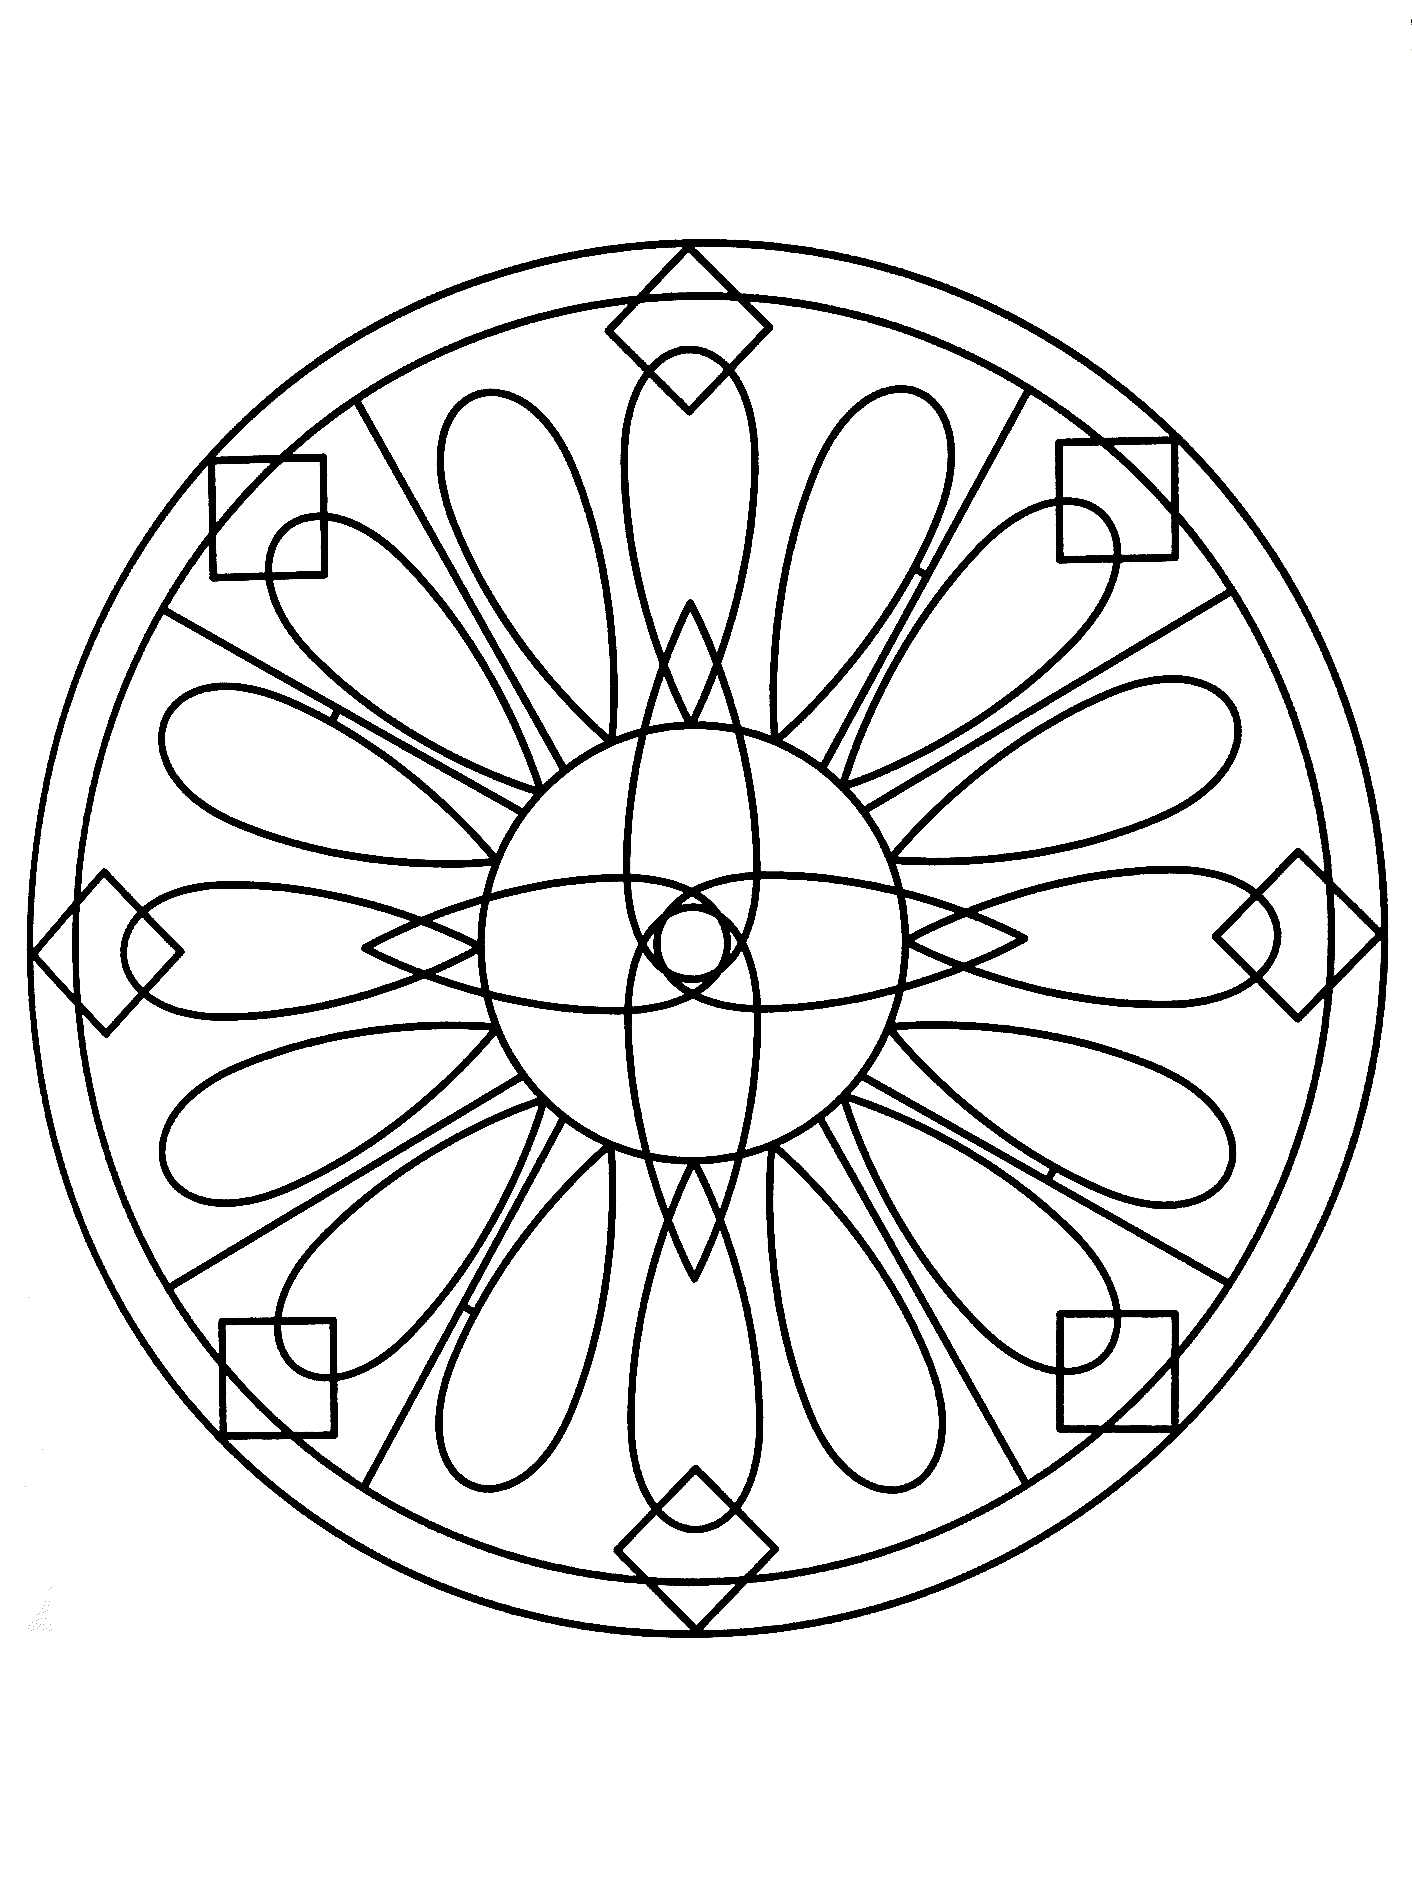 simple mandalas to color simple mandala 72 mandalas coloring pages for kids to simple to color mandalas